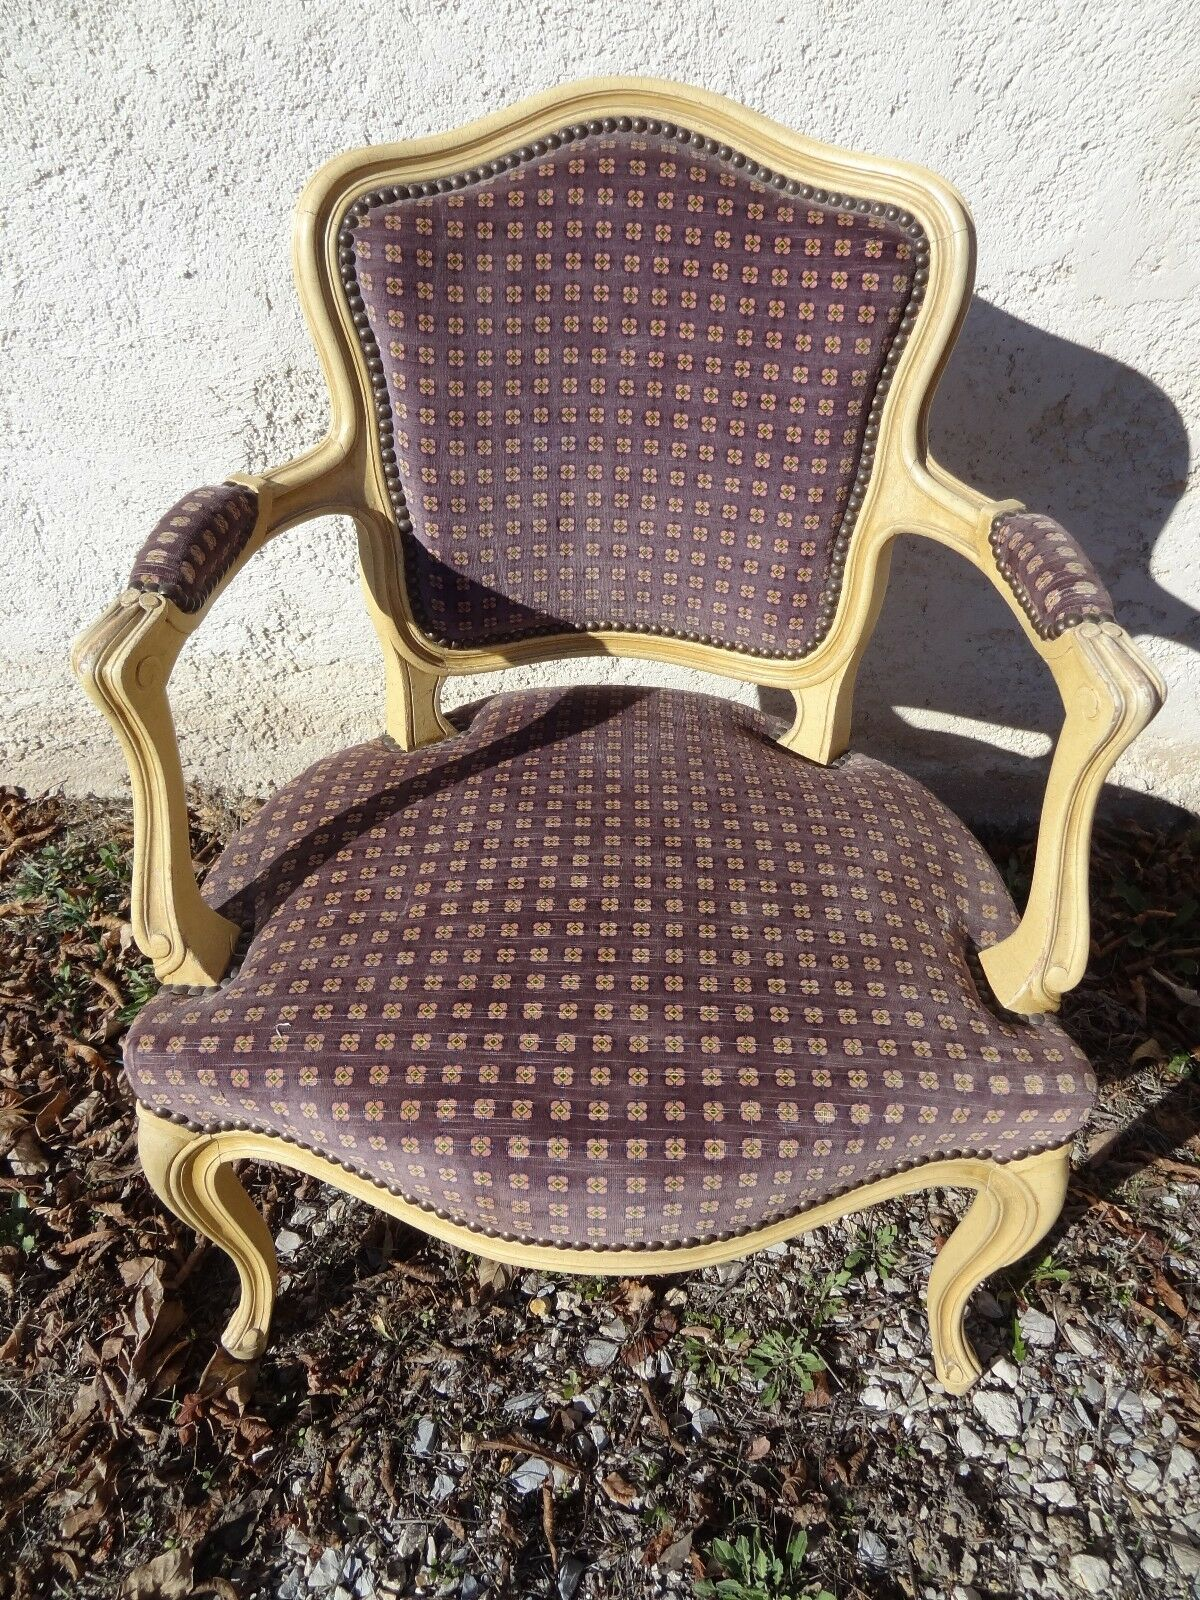 ancien fauteuil cabriolet rev tement velours violet de style louis xv eur 99 00 picclick fr. Black Bedroom Furniture Sets. Home Design Ideas